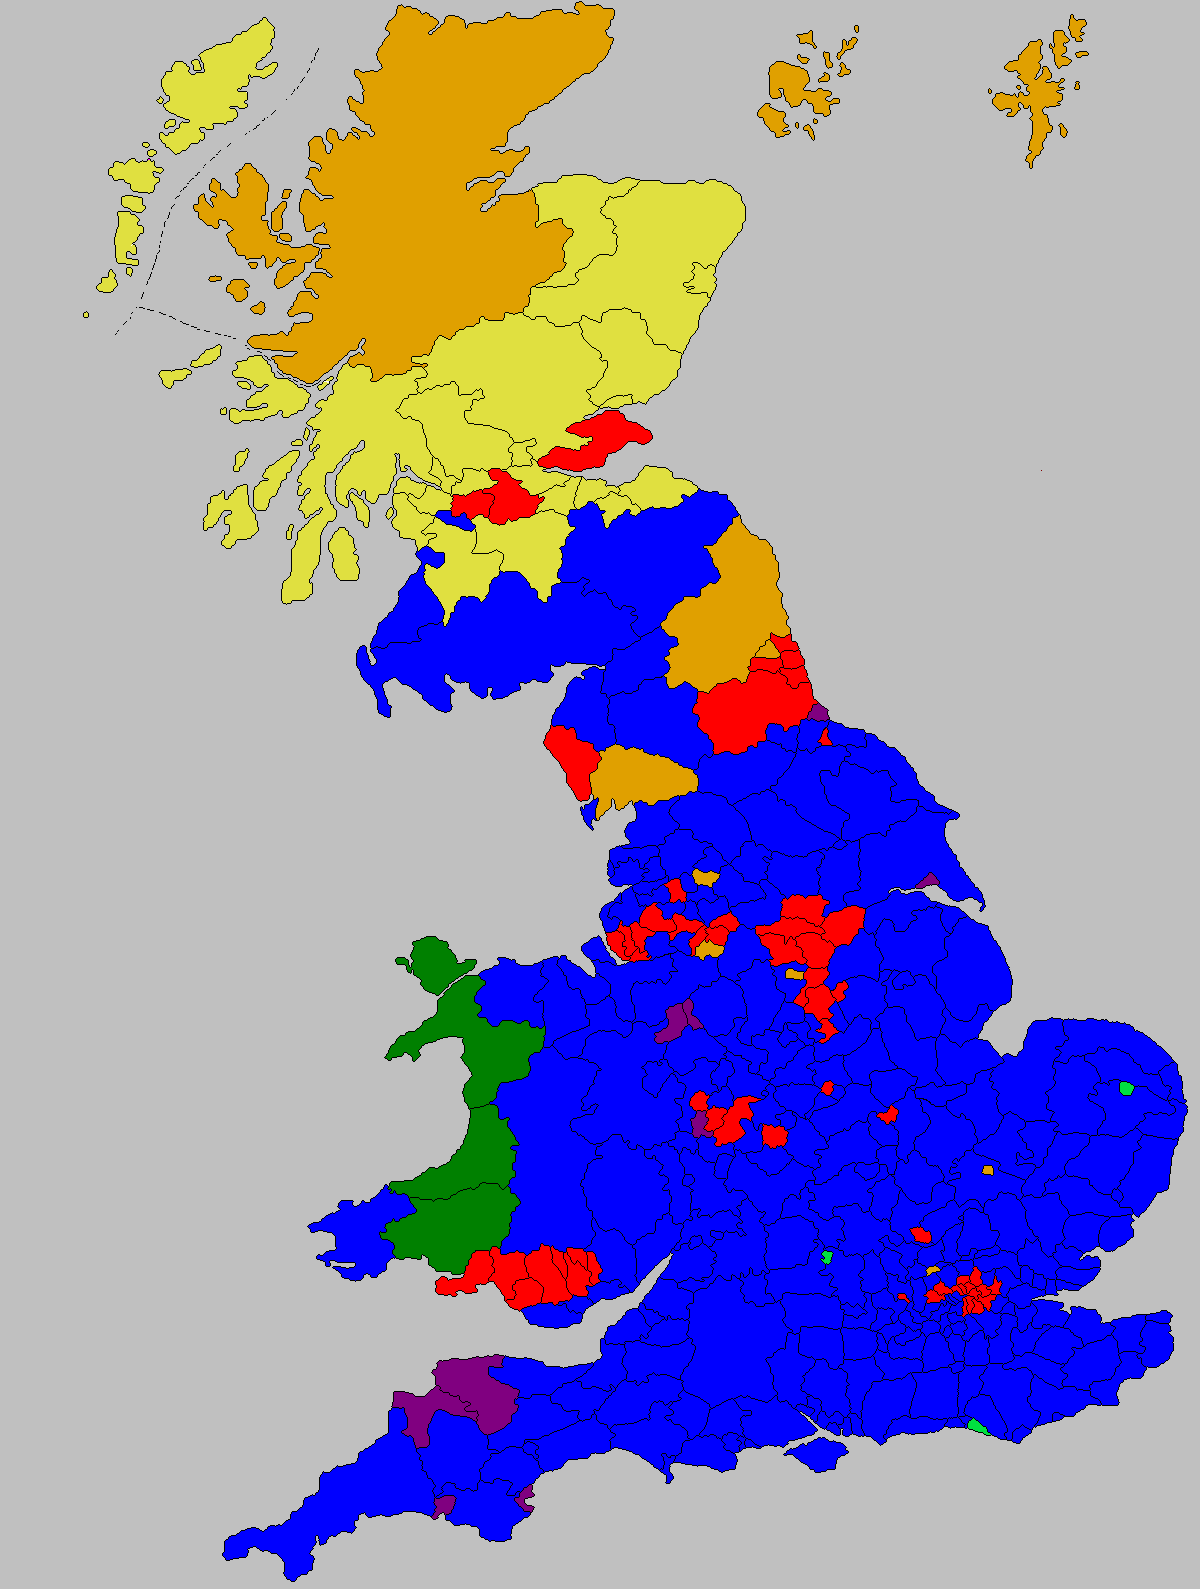 2019 United Kingdom general election in Wales